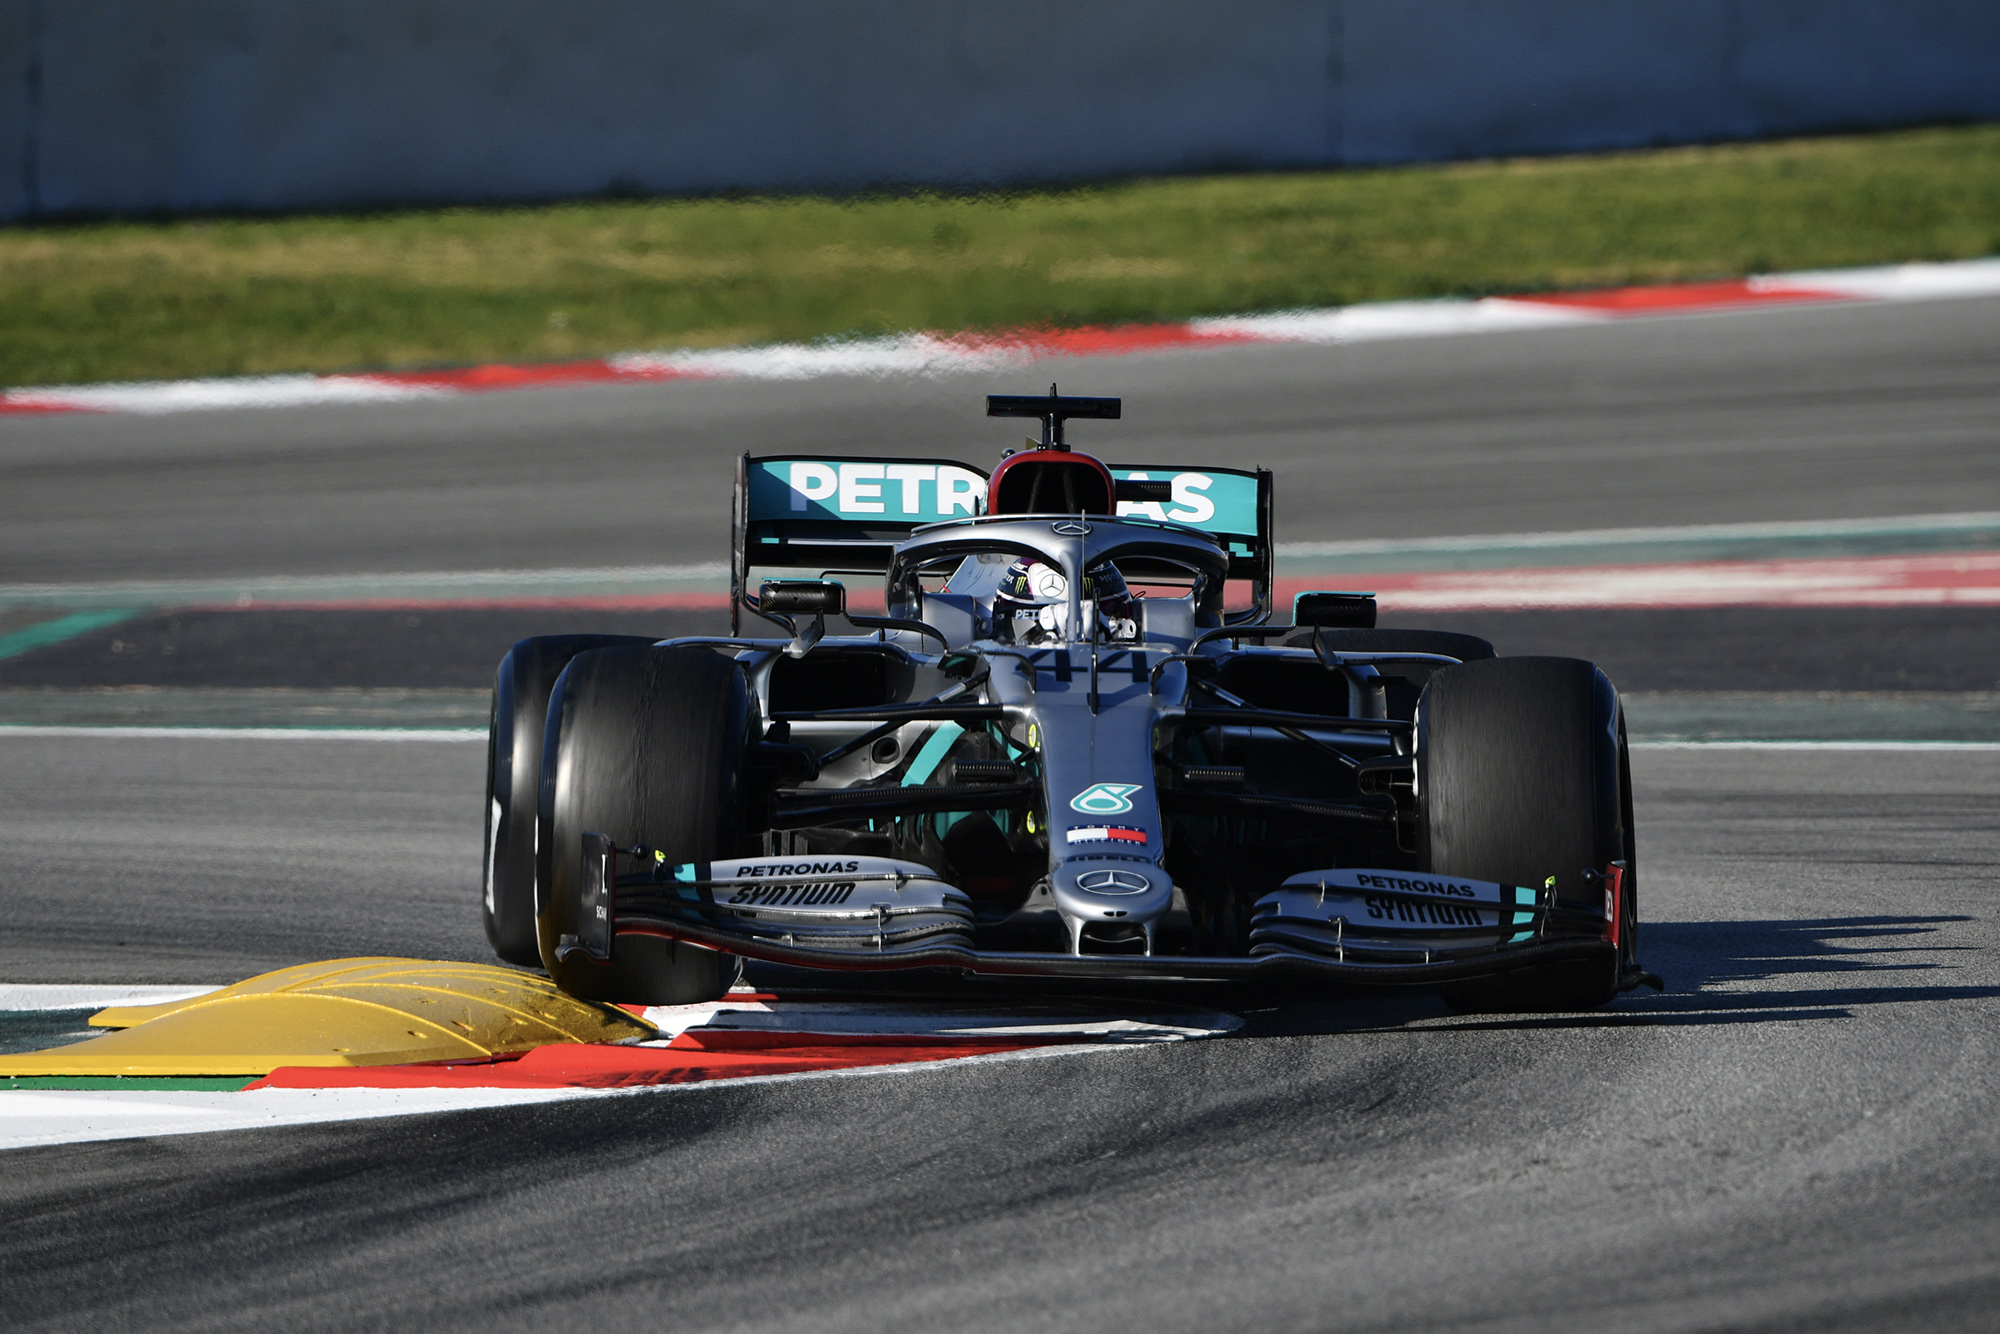 Lewis Hamilton cornering during testing